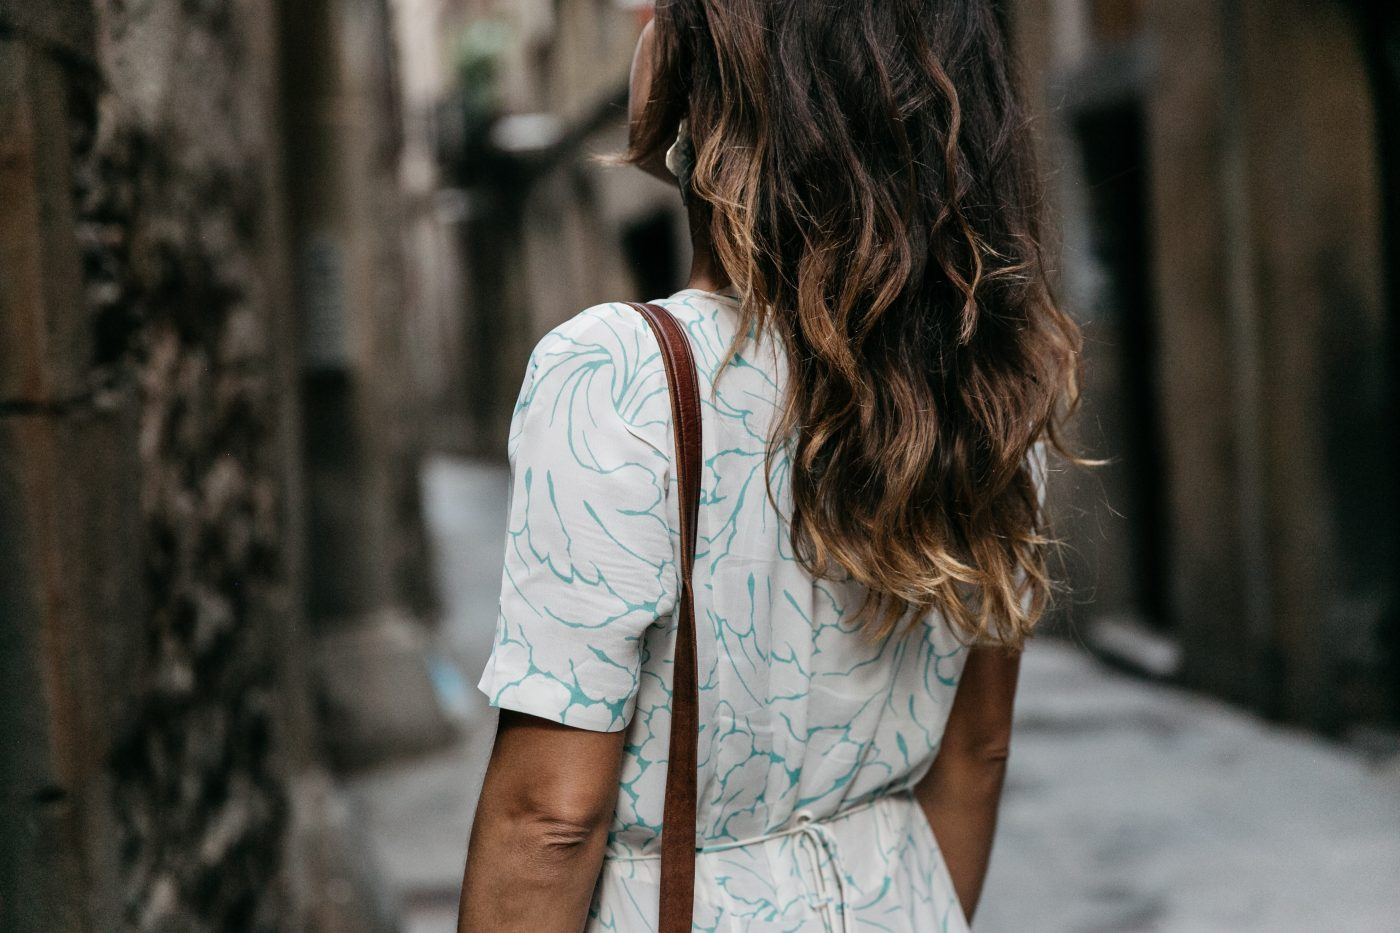 Long_Dress-HM_Leather_Bag-Maje_Sandals-Outfit-Primavera_Sound-Collage_Vintage-Street_Style-39